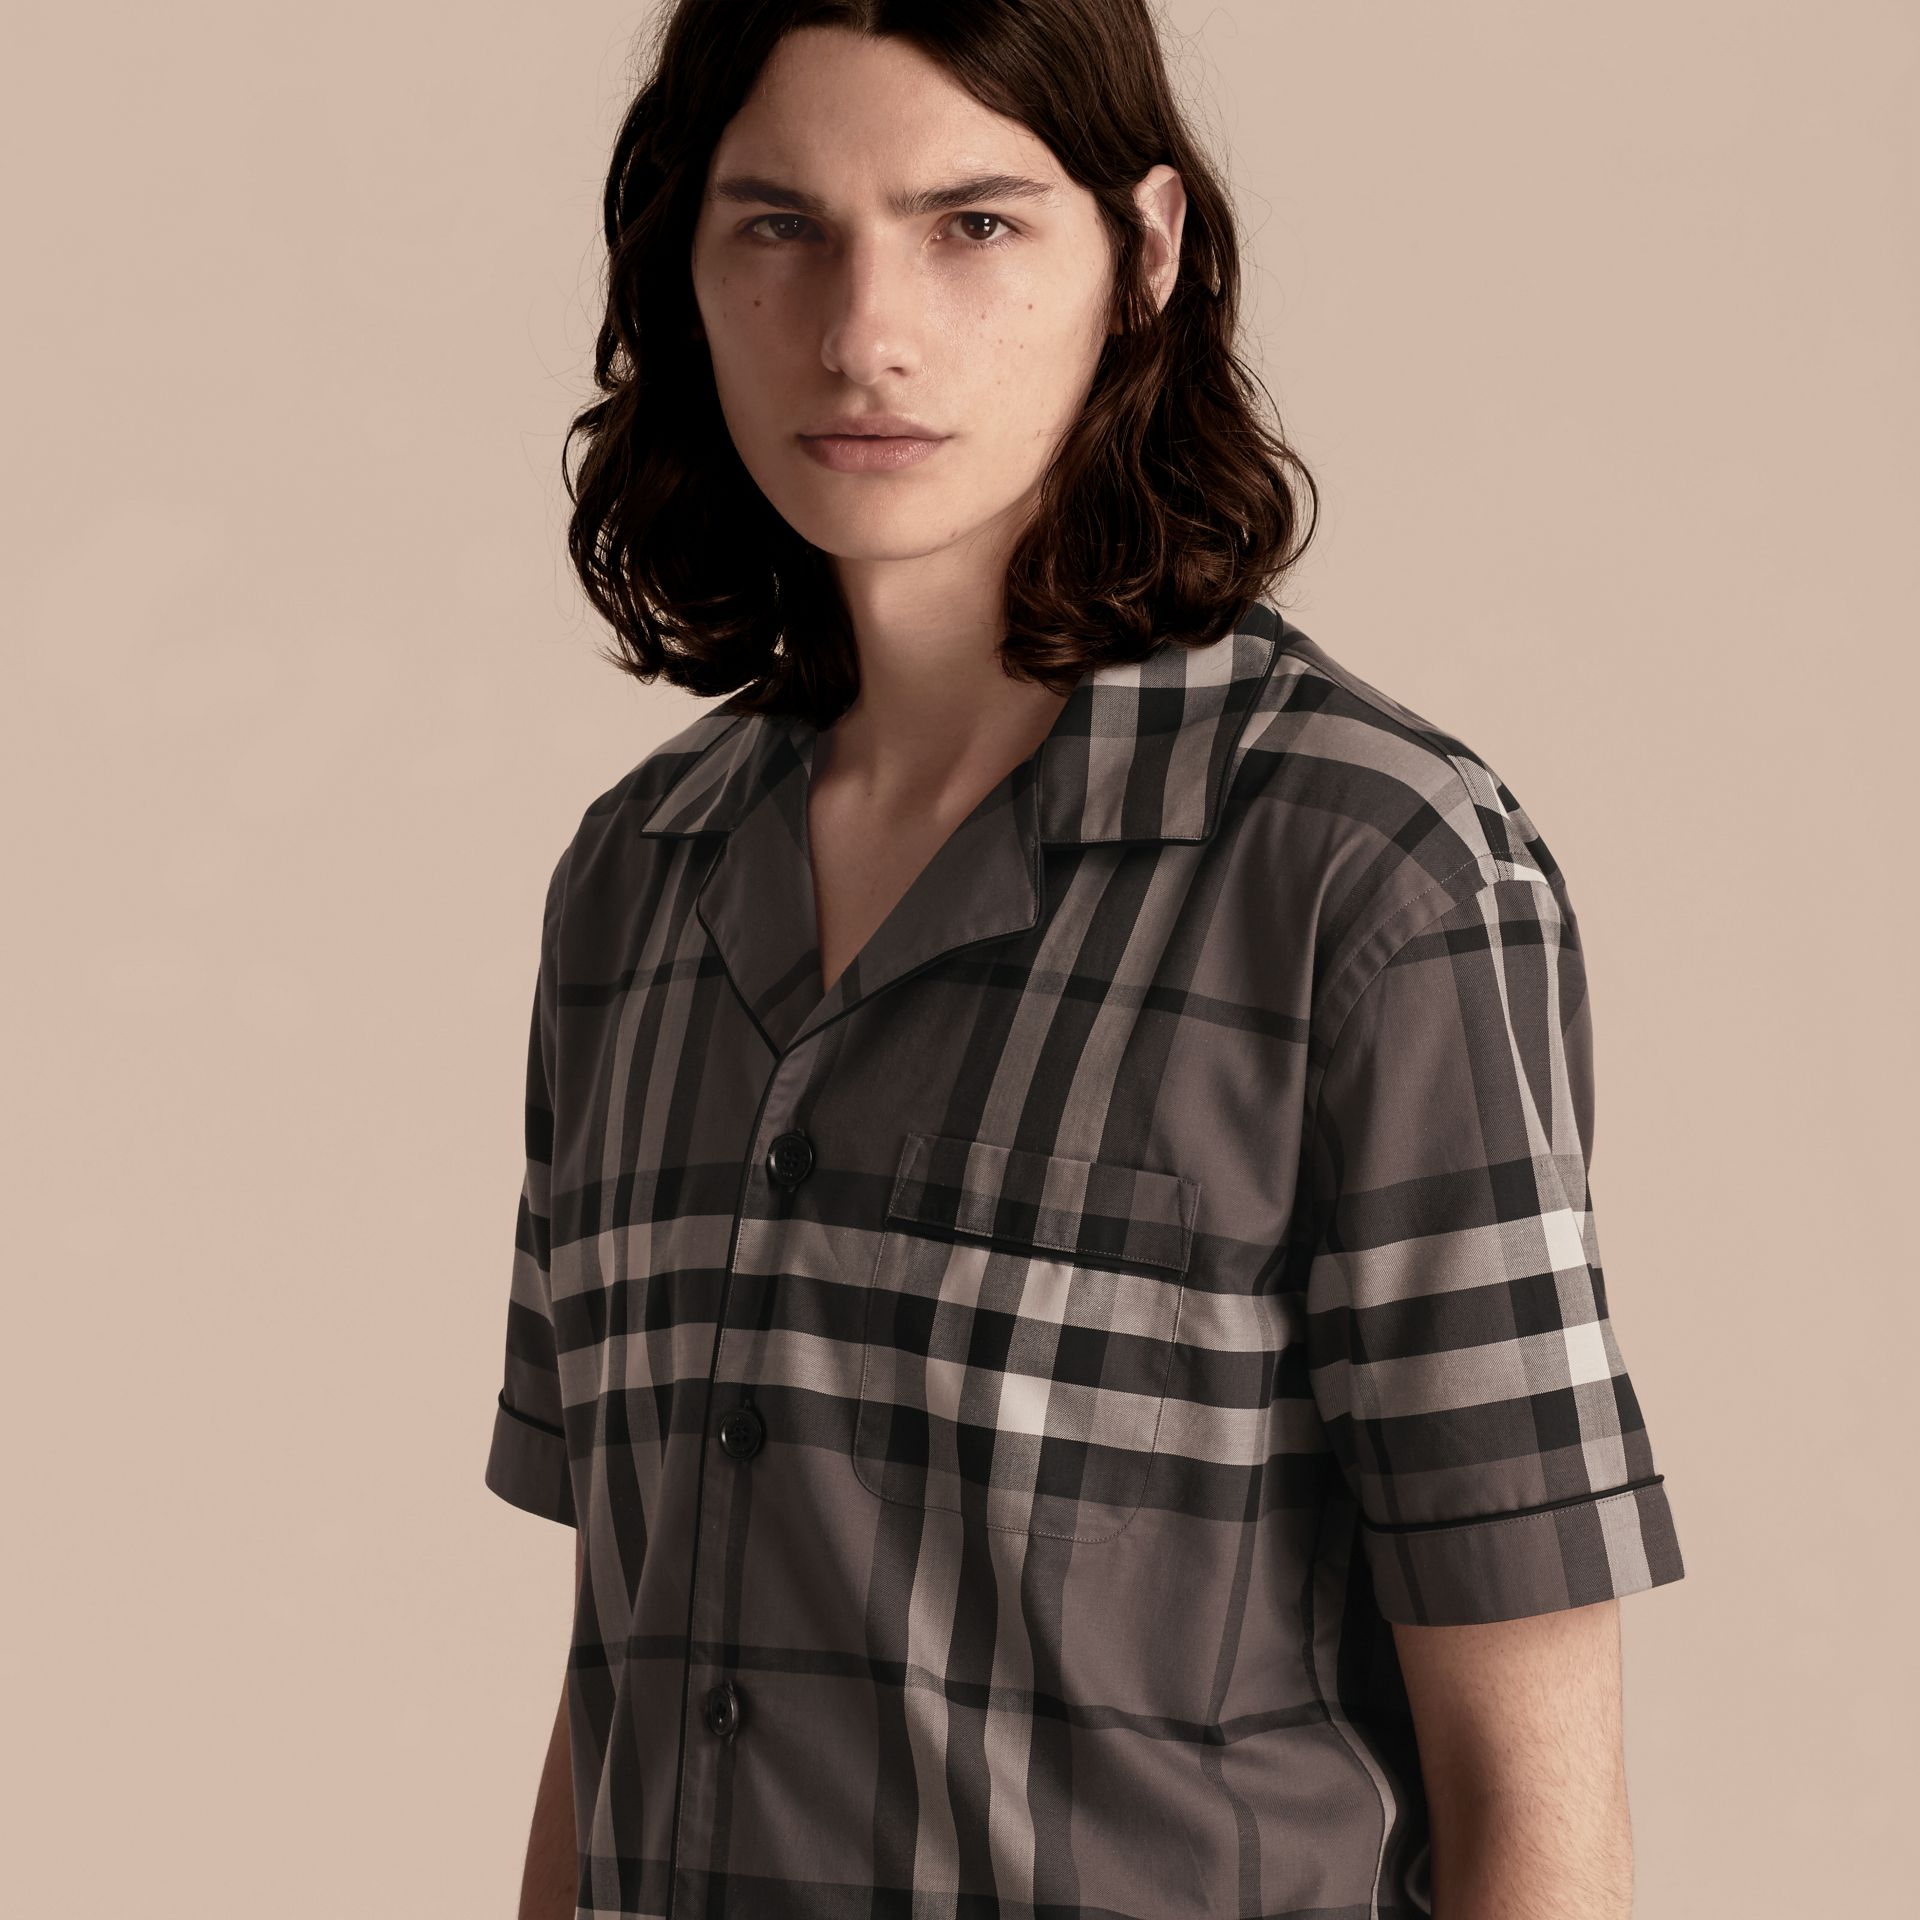 Charcoal Short-sleeved Check Cotton Pyjama-style Shirt Charcoal - gallery image 5